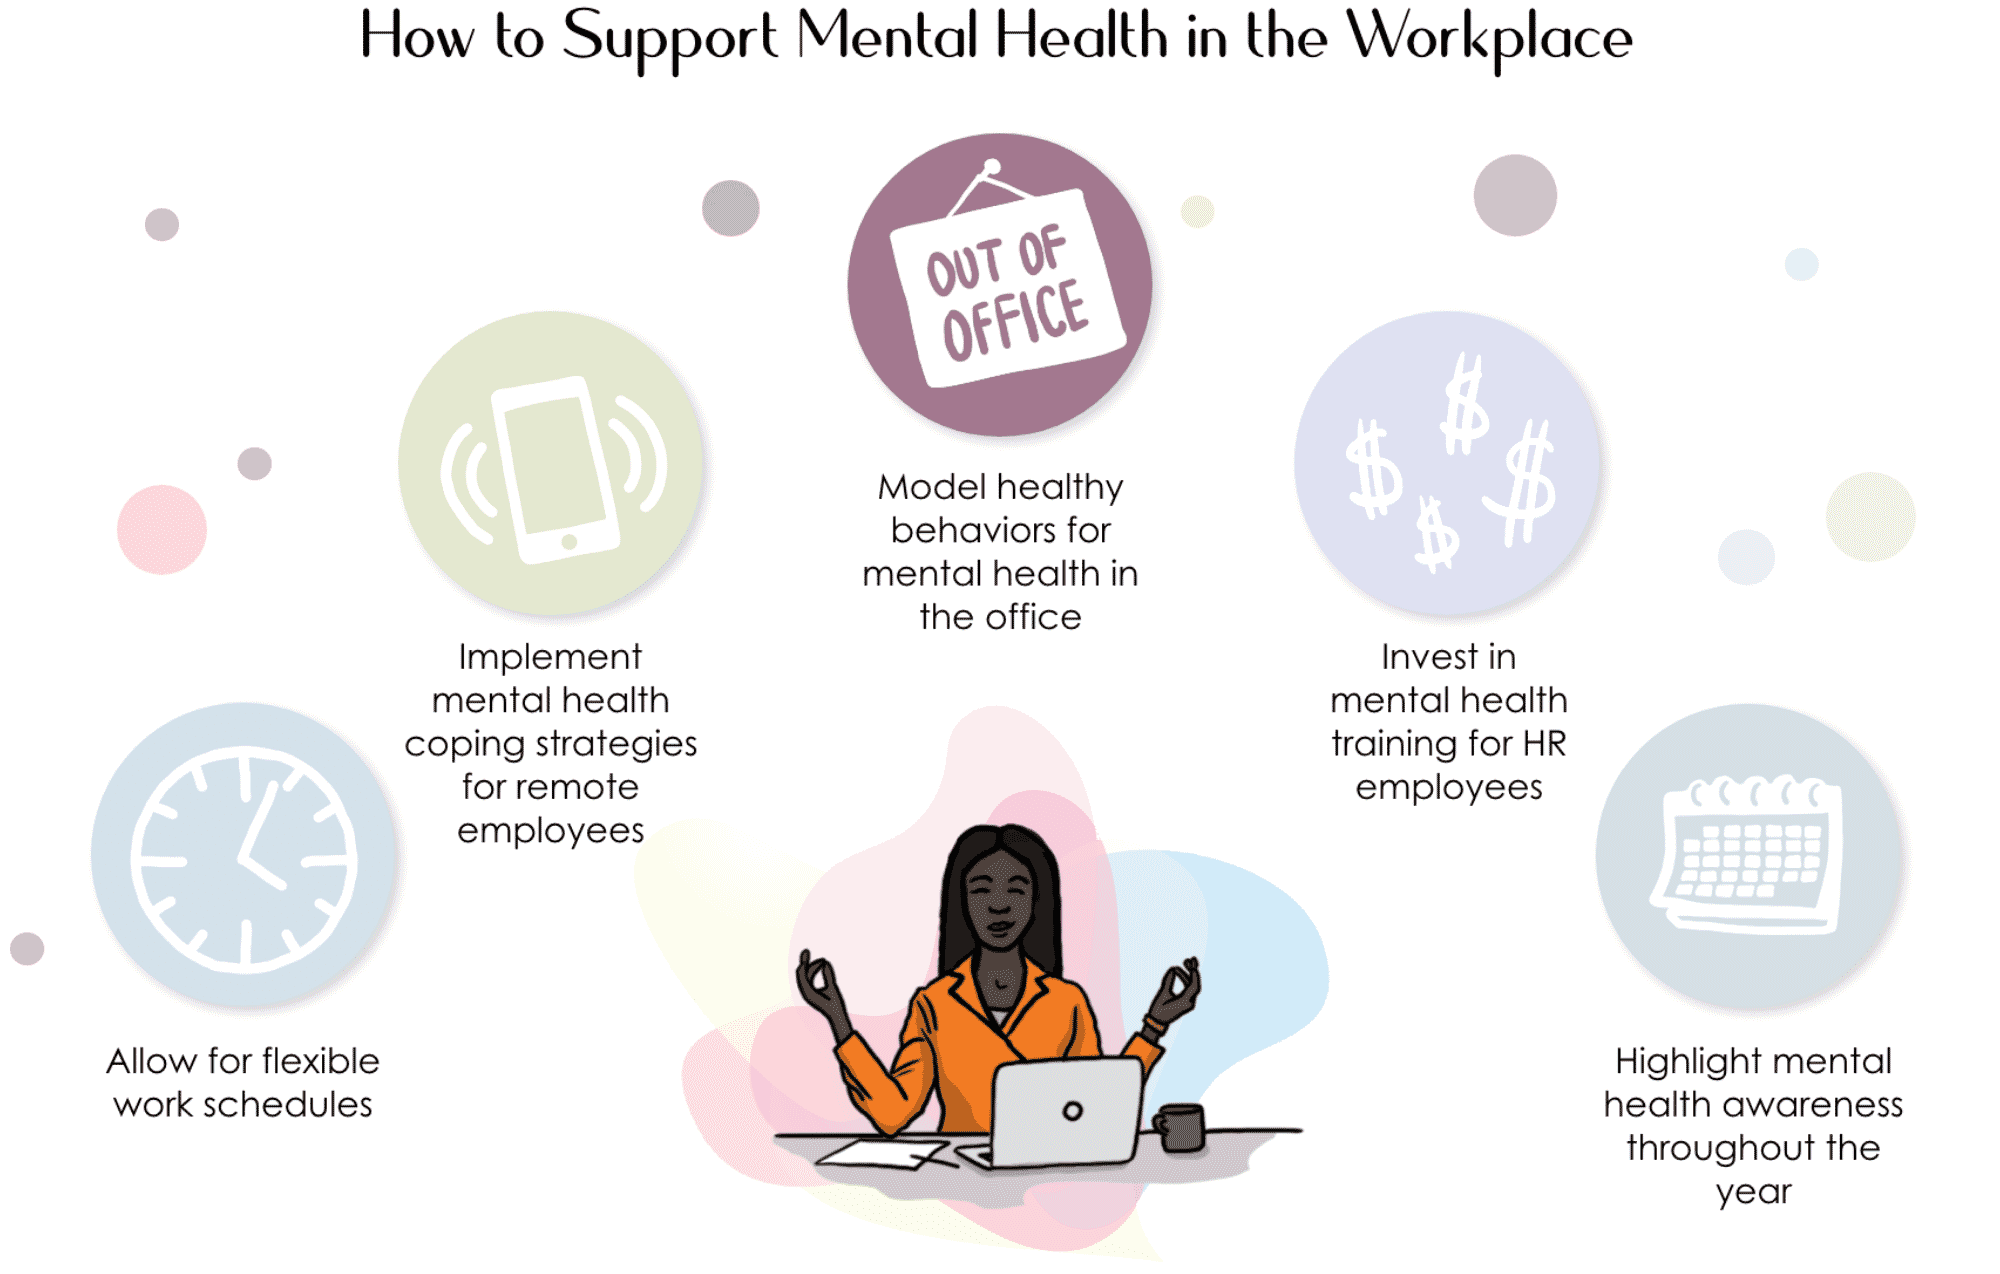 Model healthy behaviors for mental health in the office